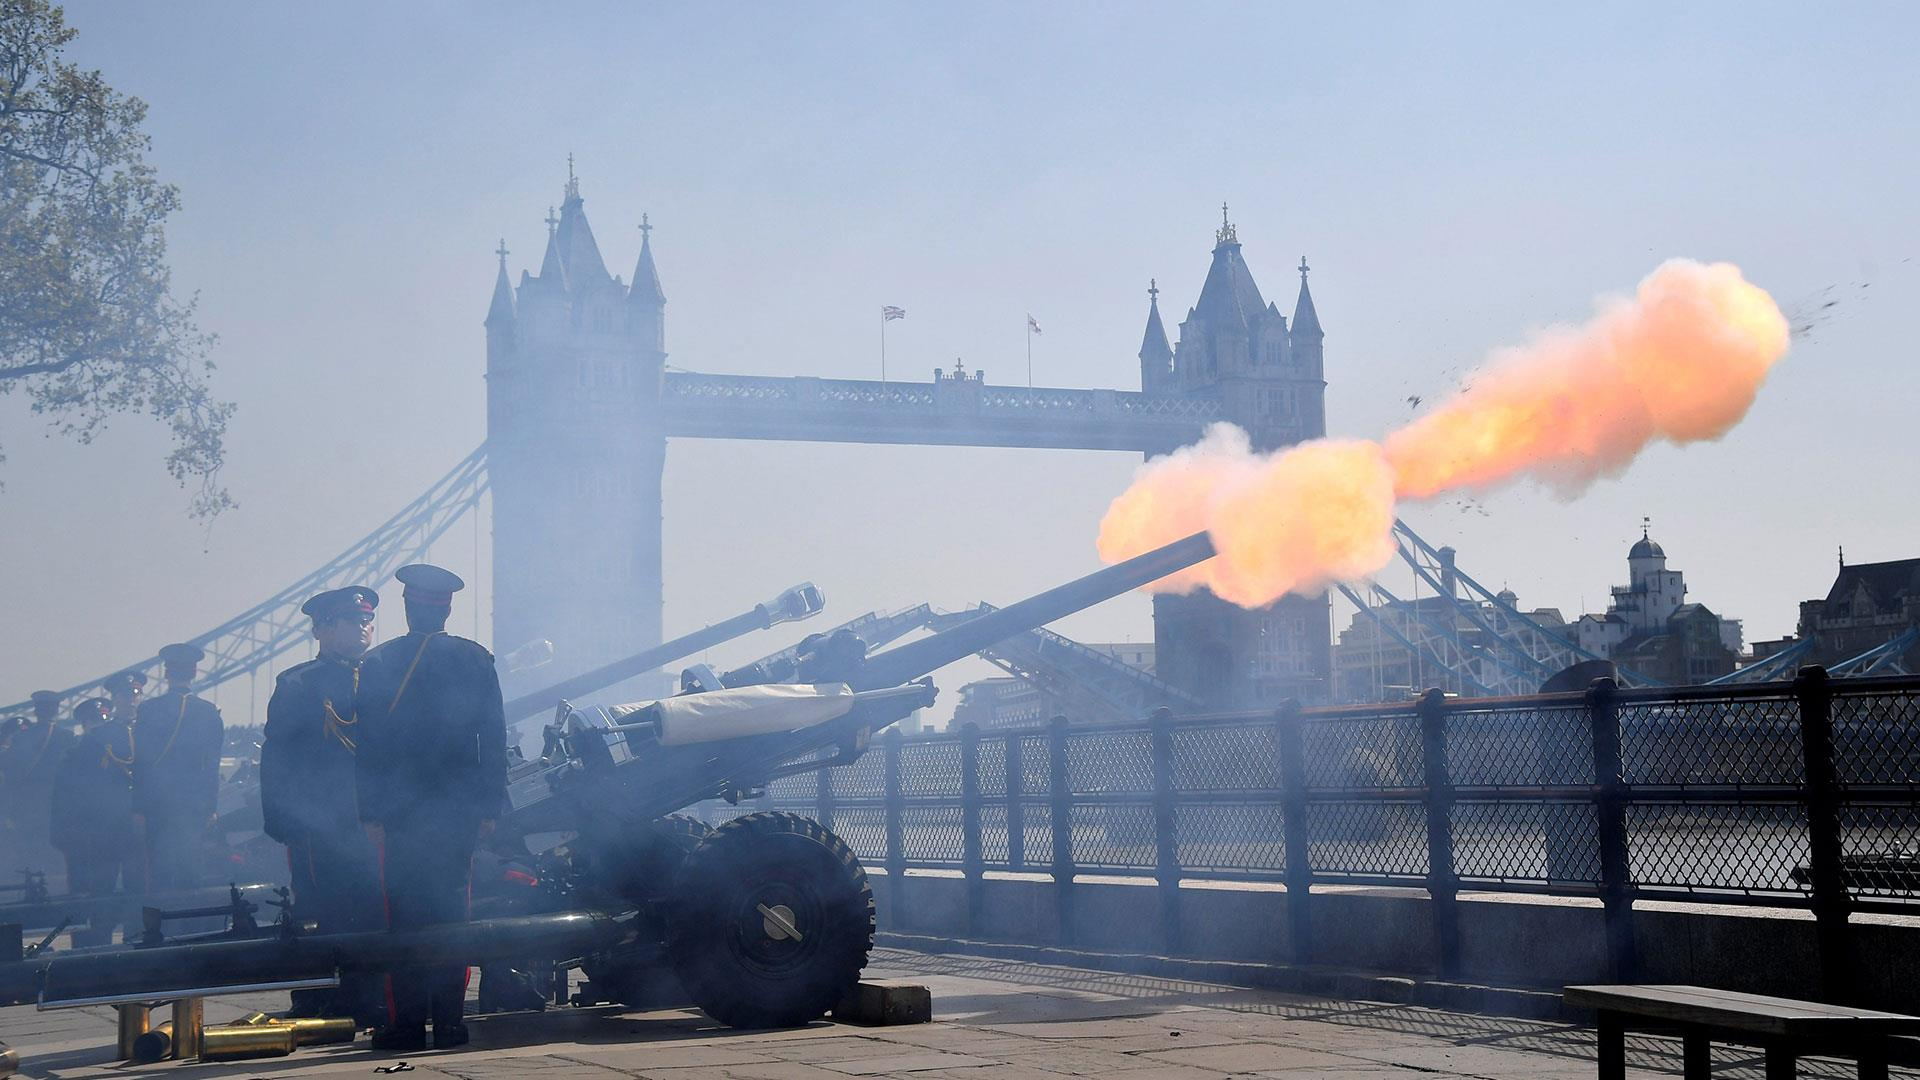 Queen Elizabeth II's 93rd birthday celebrated by London gun salutes